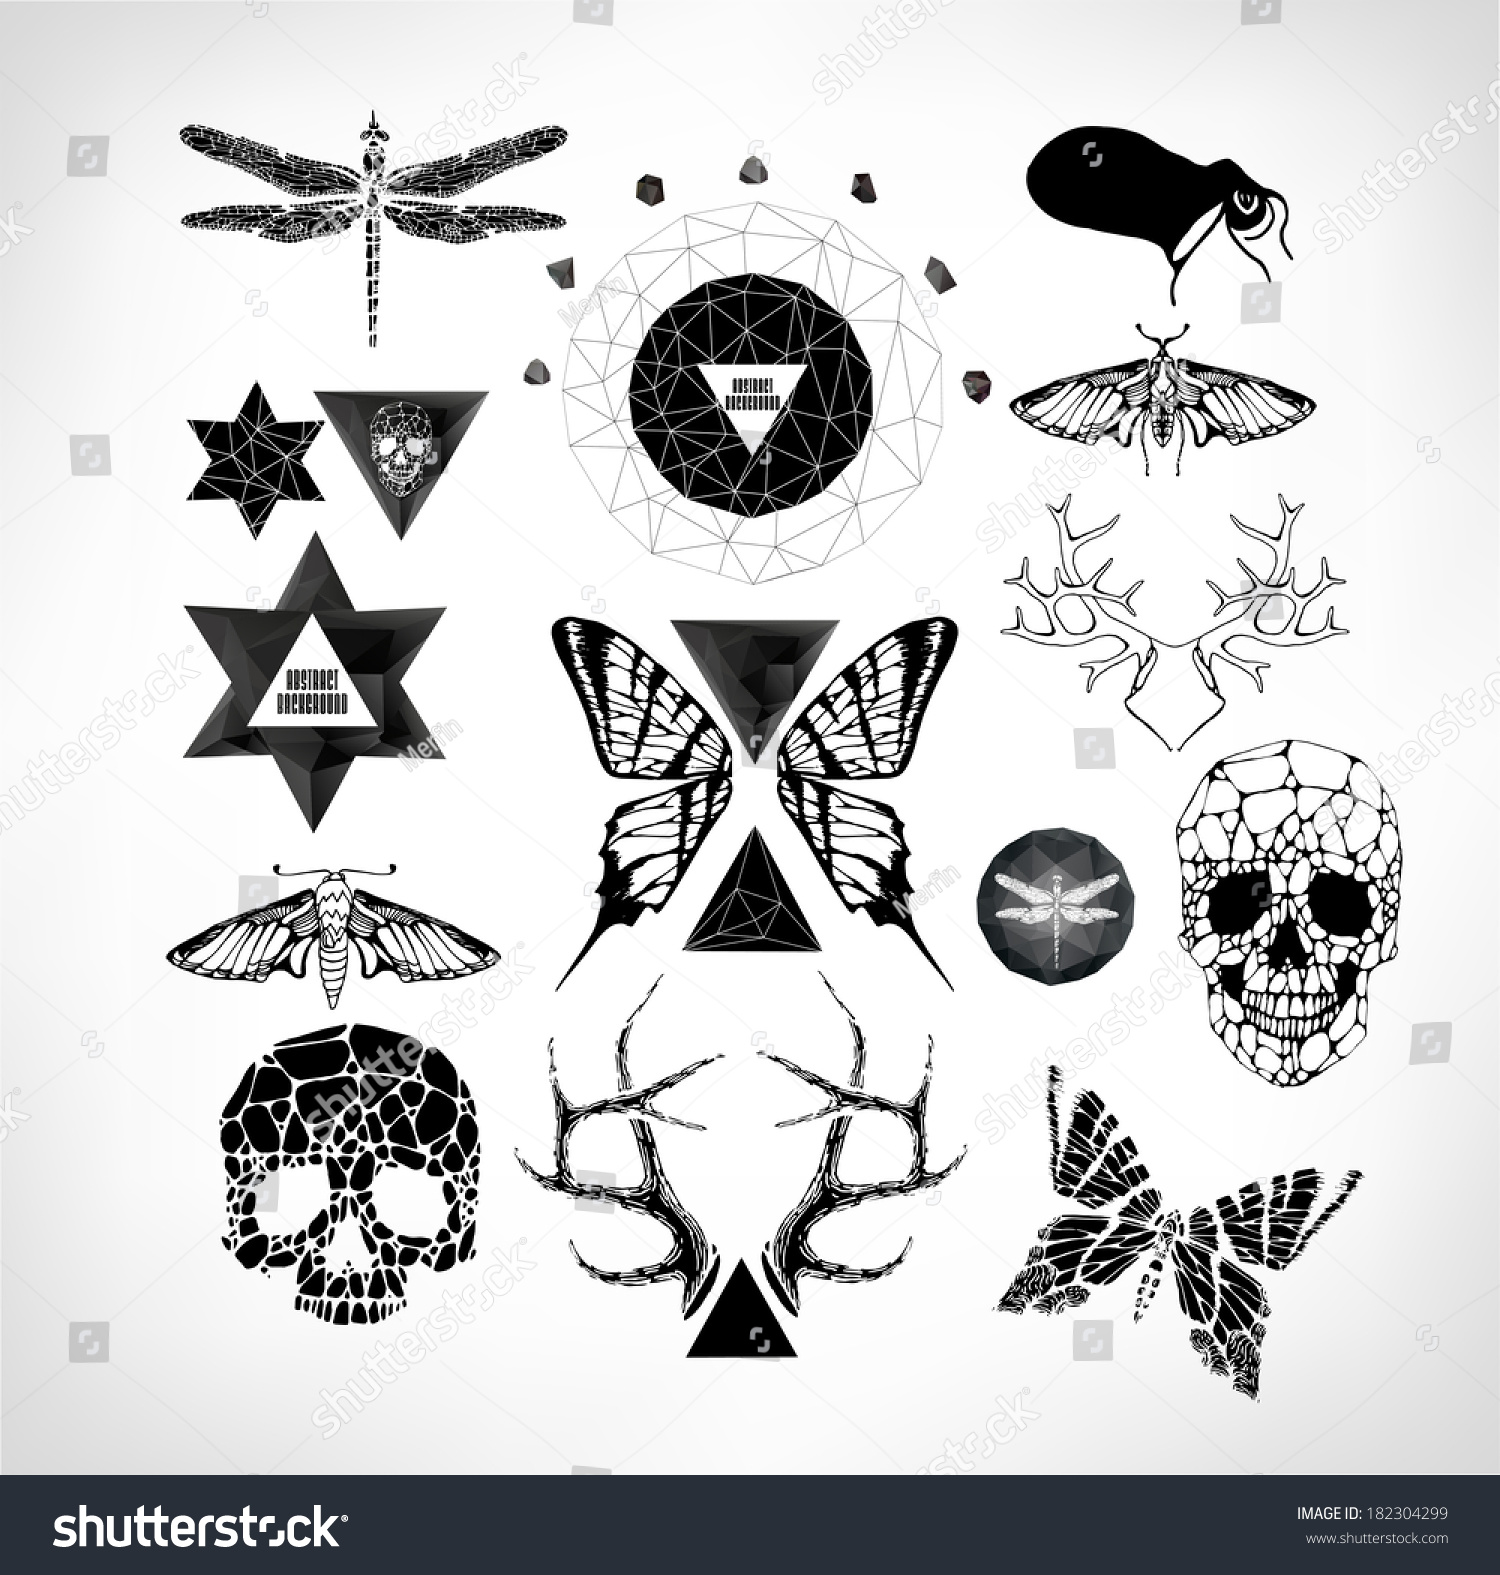 Abstract Gothic Sacral Illustration With Polygon, Crystal. Juice Bar Logo. Elite Decals. Light Up Signs. Dinner Coupons. Dental Signs Of Stroke. Weather Logo. Autism Spectrum Signs. Vacuum Cleaner Logo